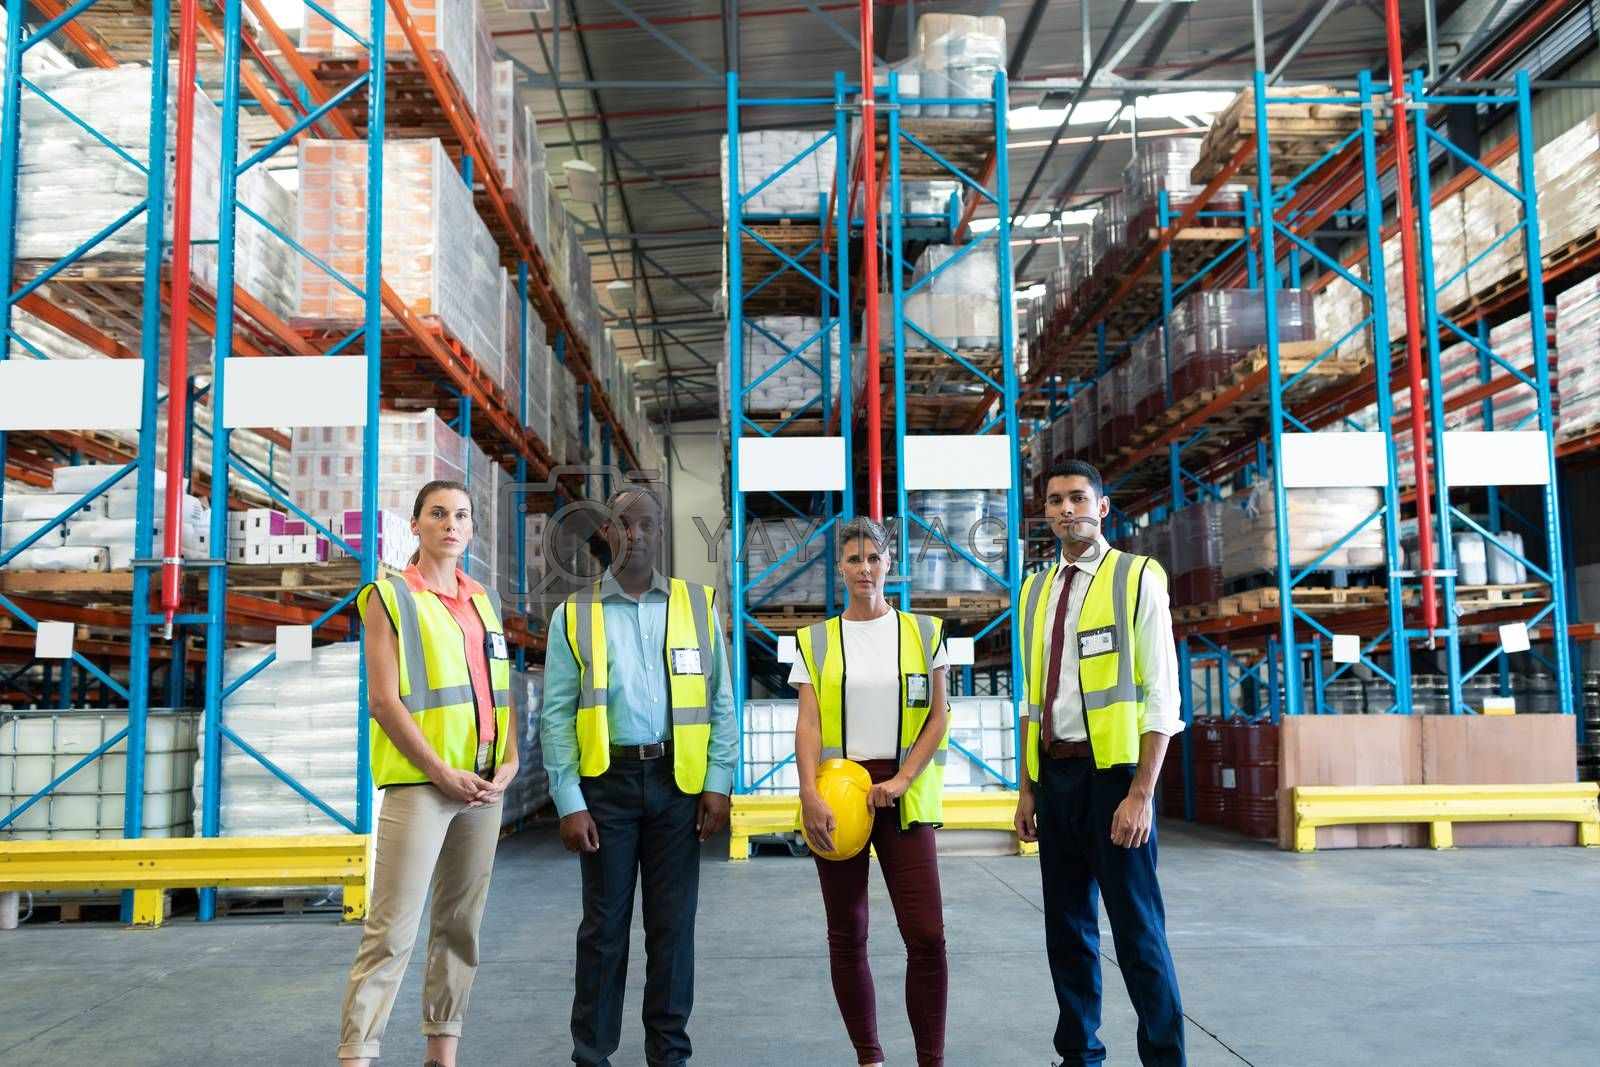 Front view of diverse warehouse staffs standing together in warehouse. This is a freight transportation and distribution warehouse. Industrial and industrial workers concept